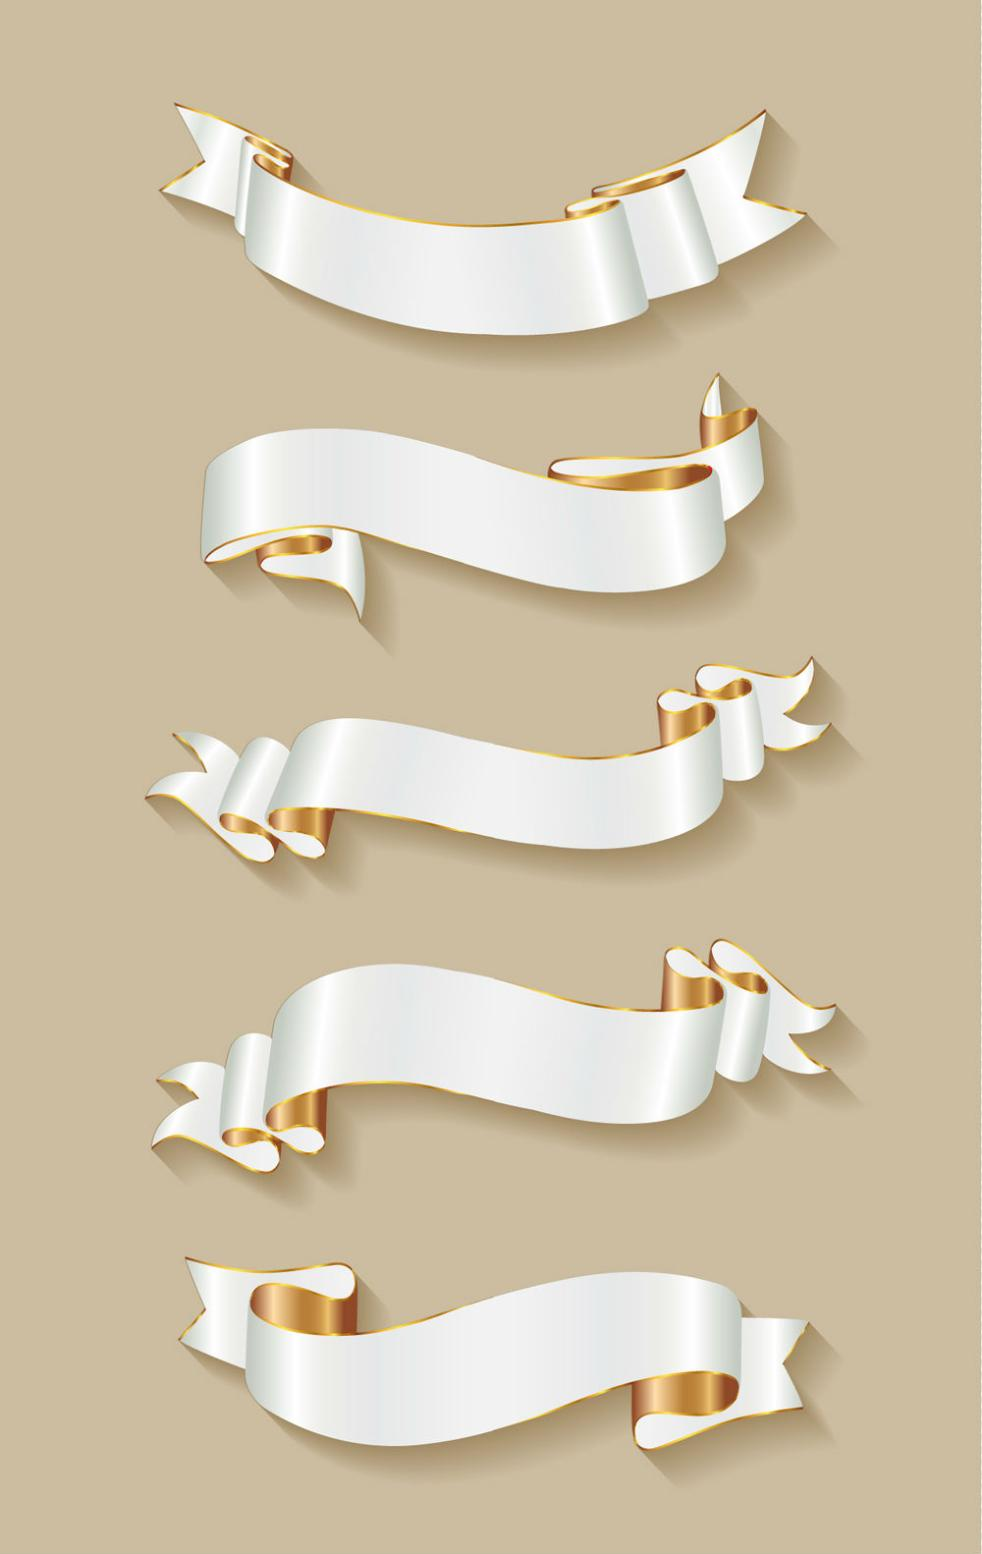 5 White Banner Phnom Penh Ribbon Vector